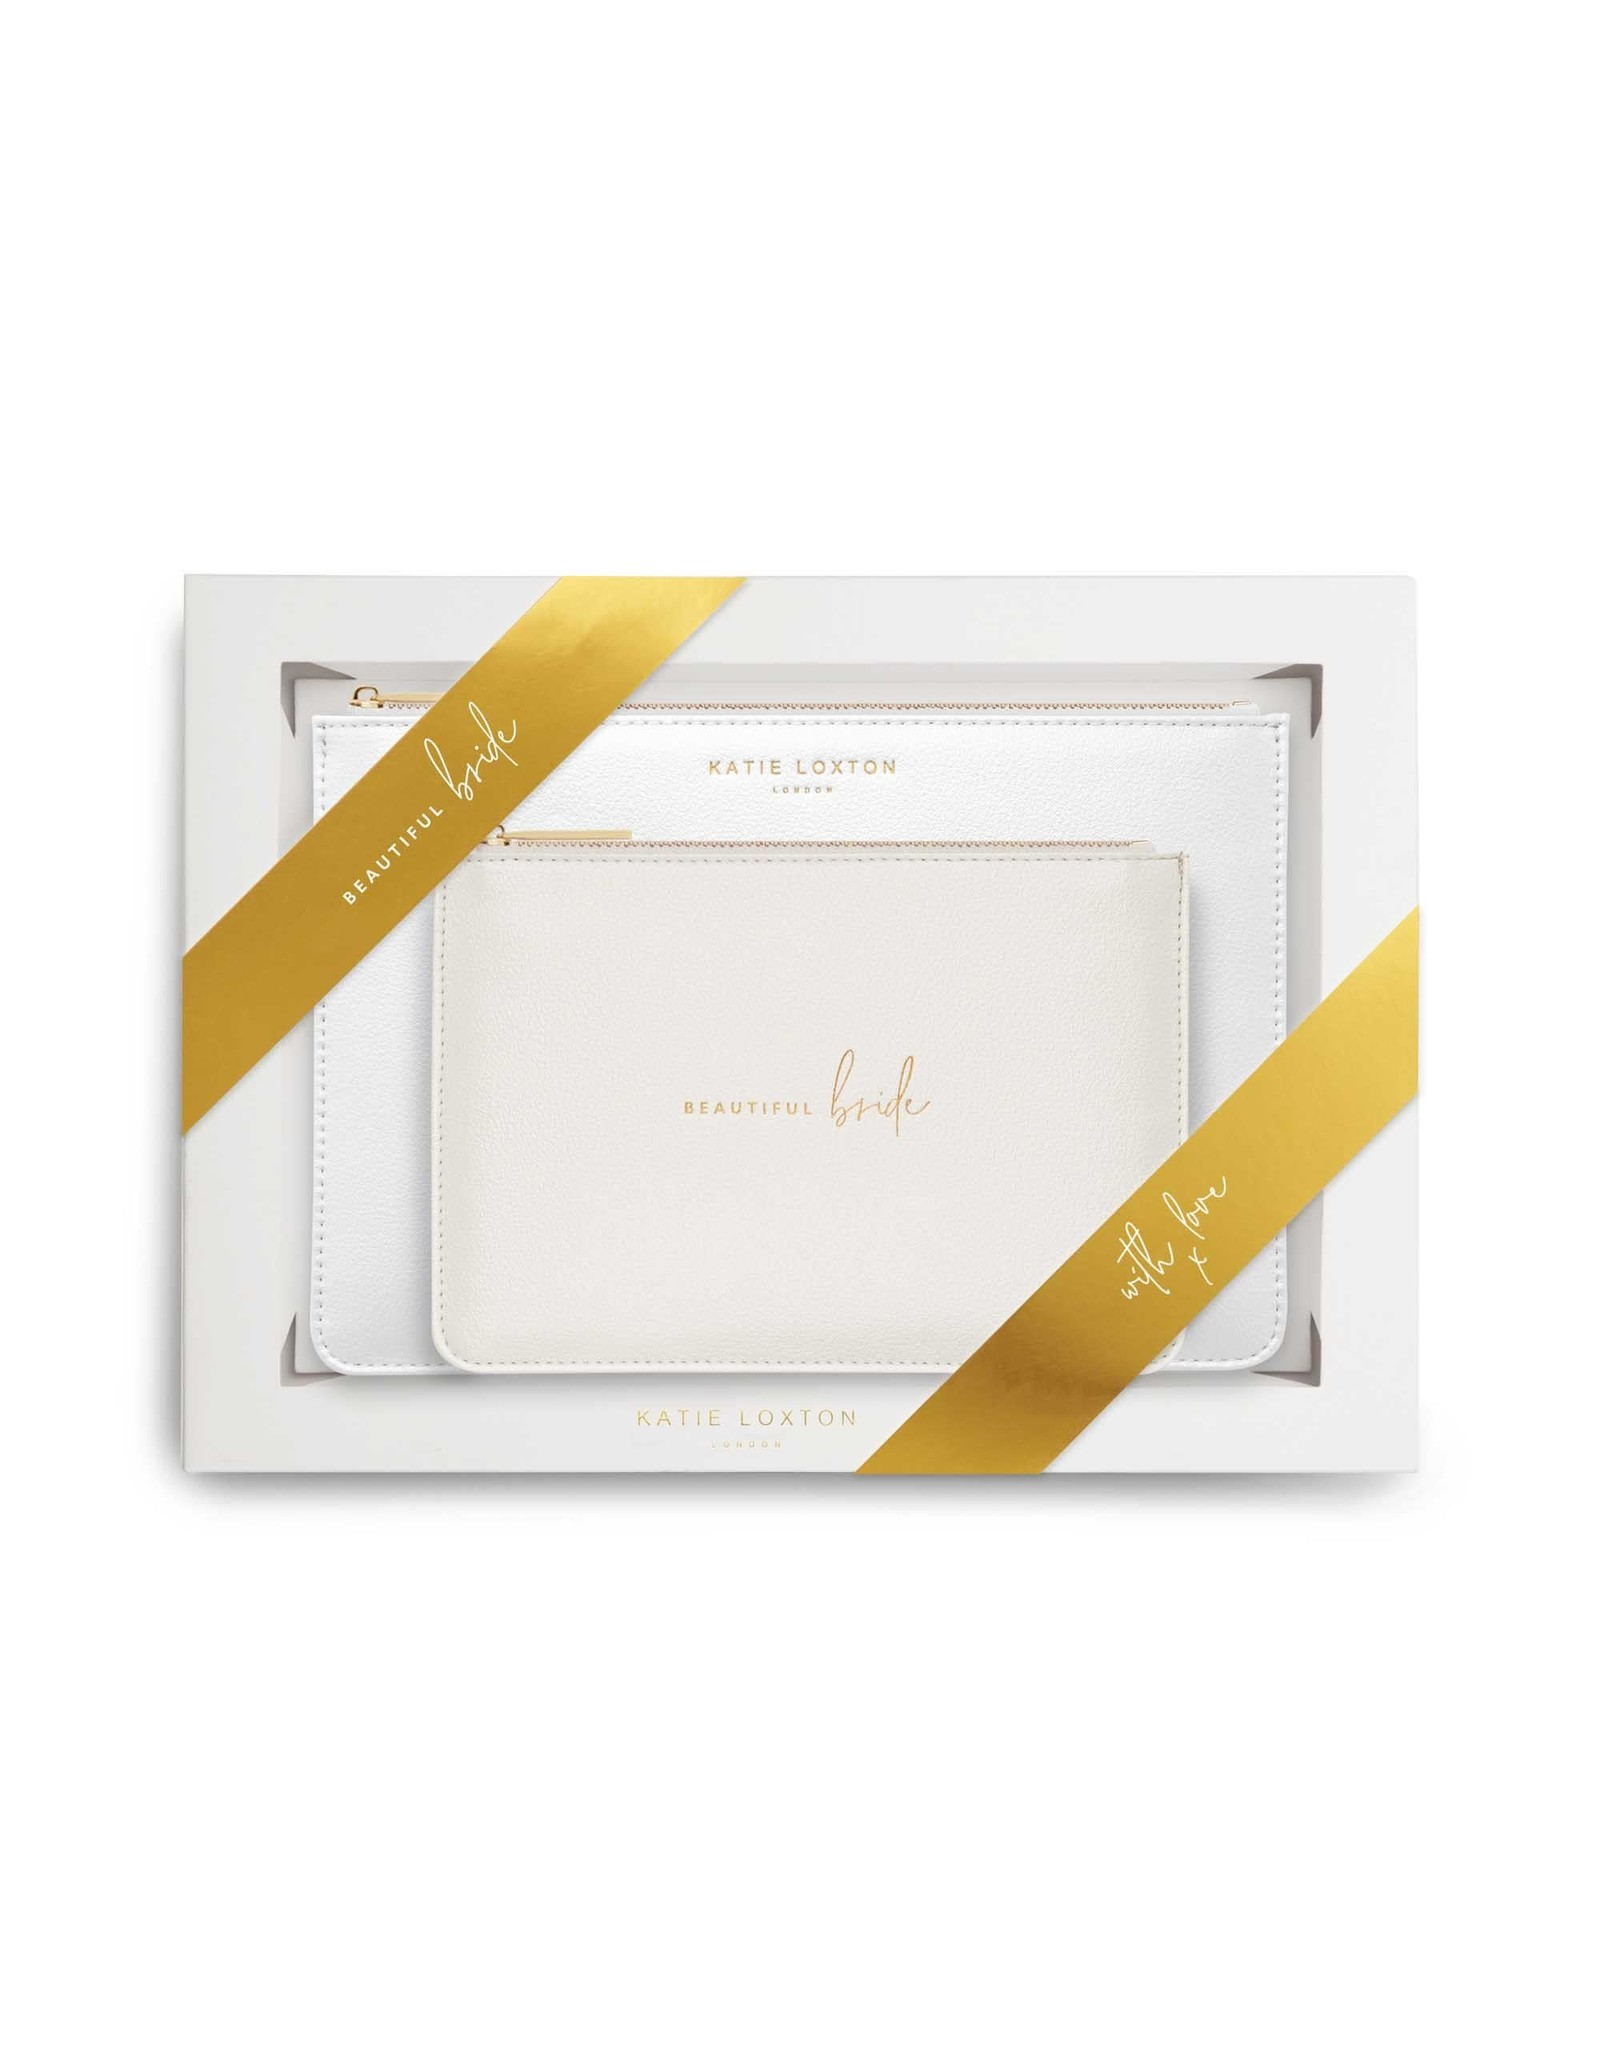 Katie Loxton Perfect Pouch Giftset - Beautiful Bride